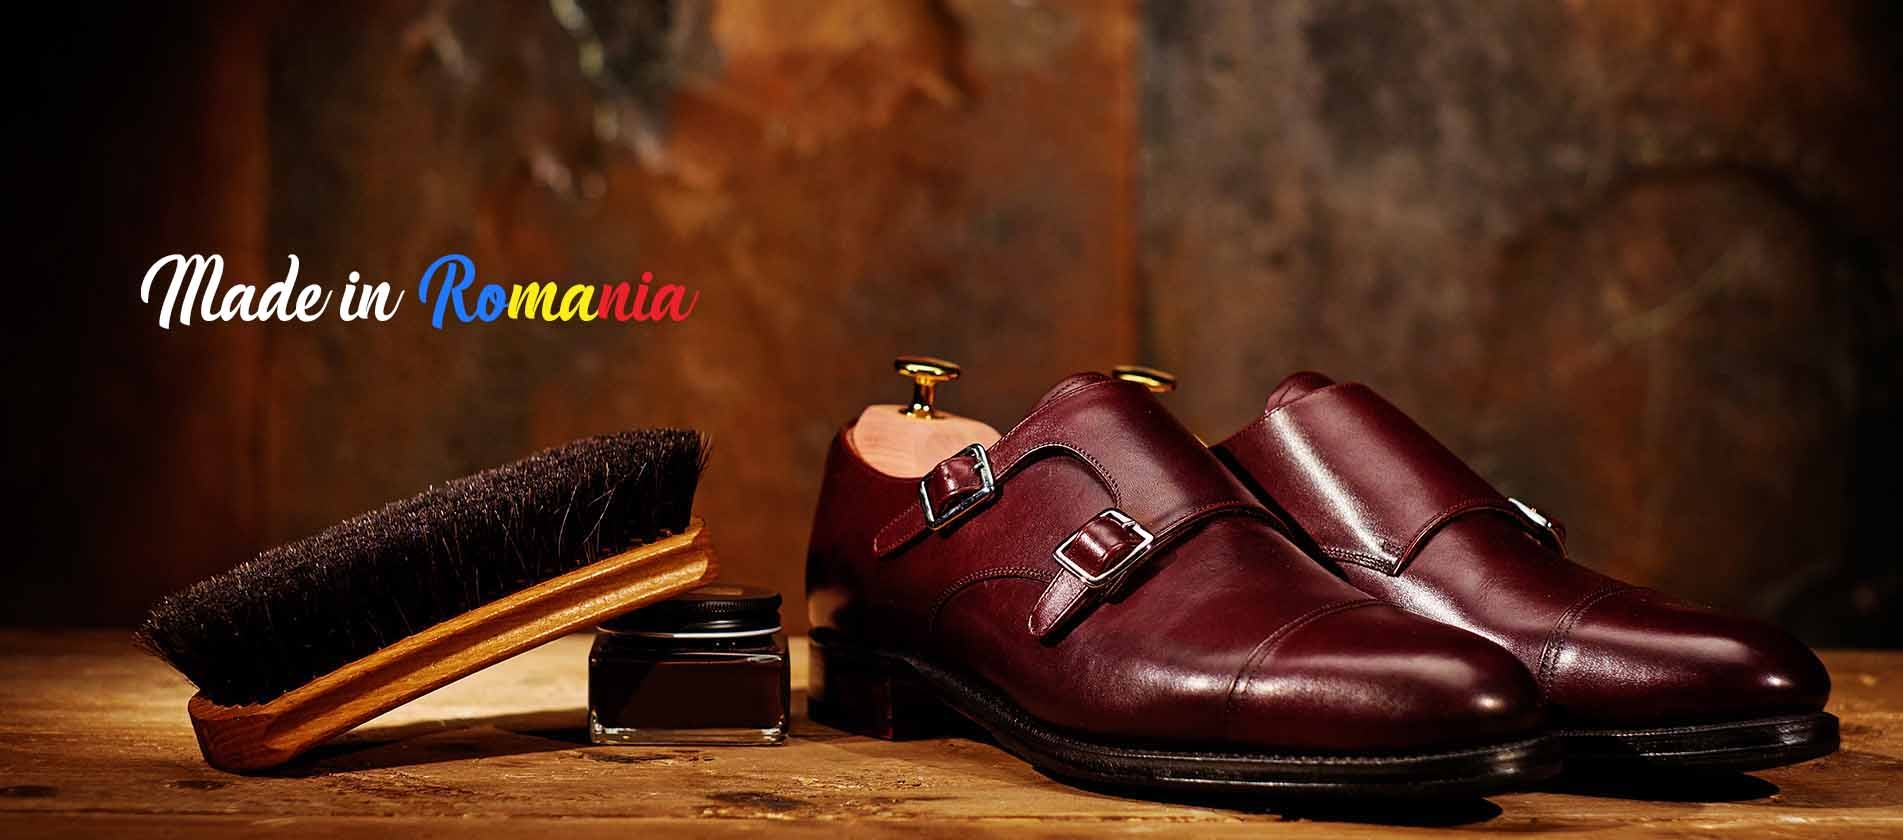 natural leather shoes produced in romania